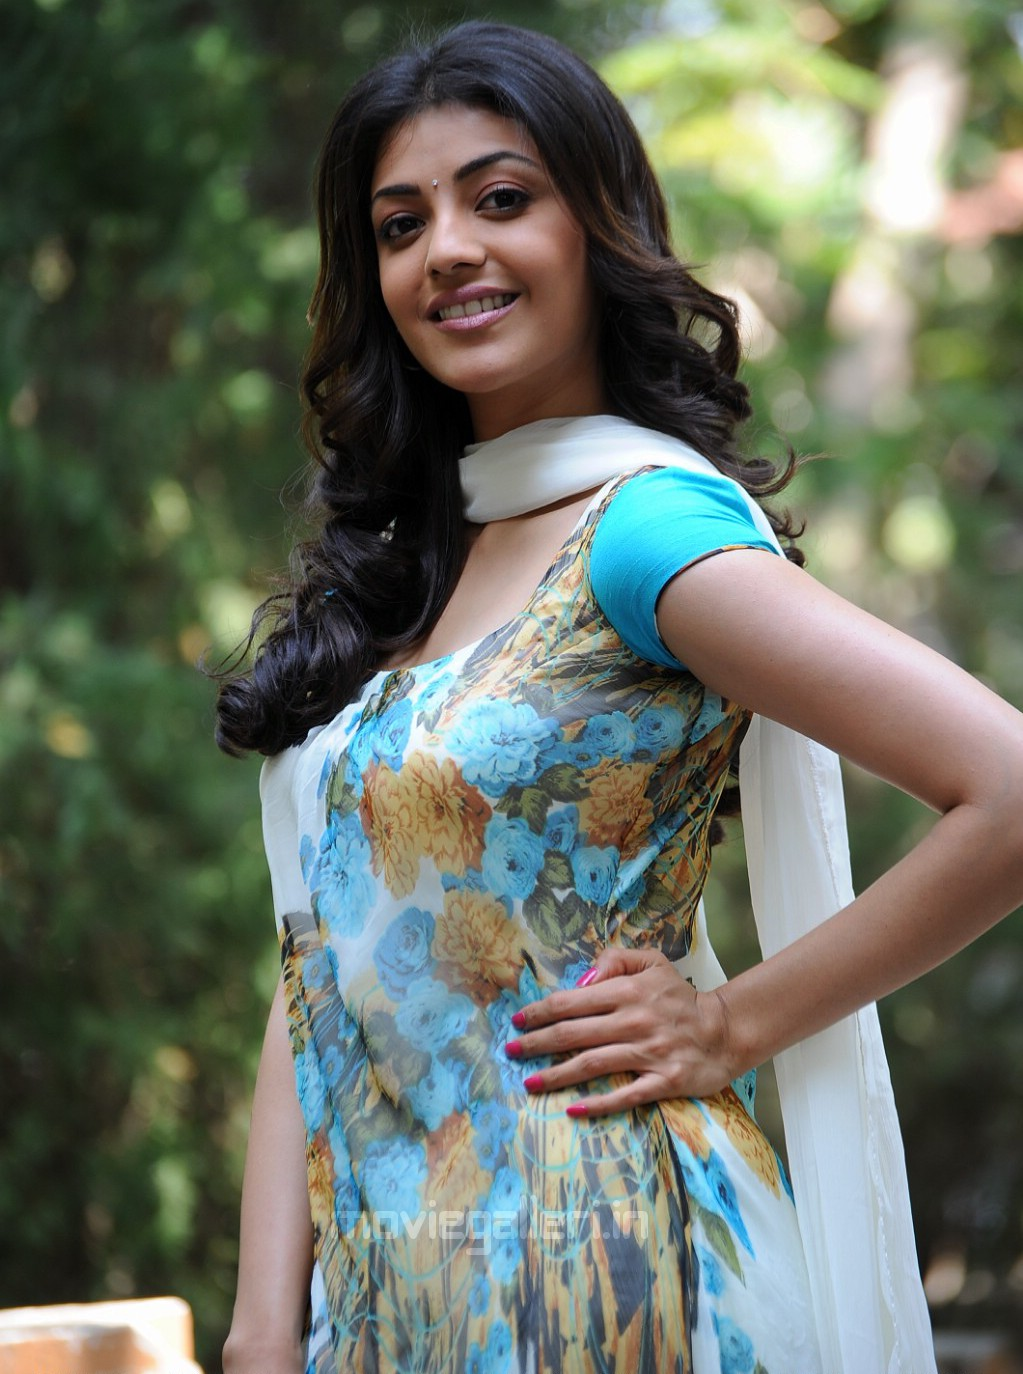 Images Of Hd Love Wallpapers Cocote Group Kajal Cute Hd Wallpapers Kajal Cute Pics